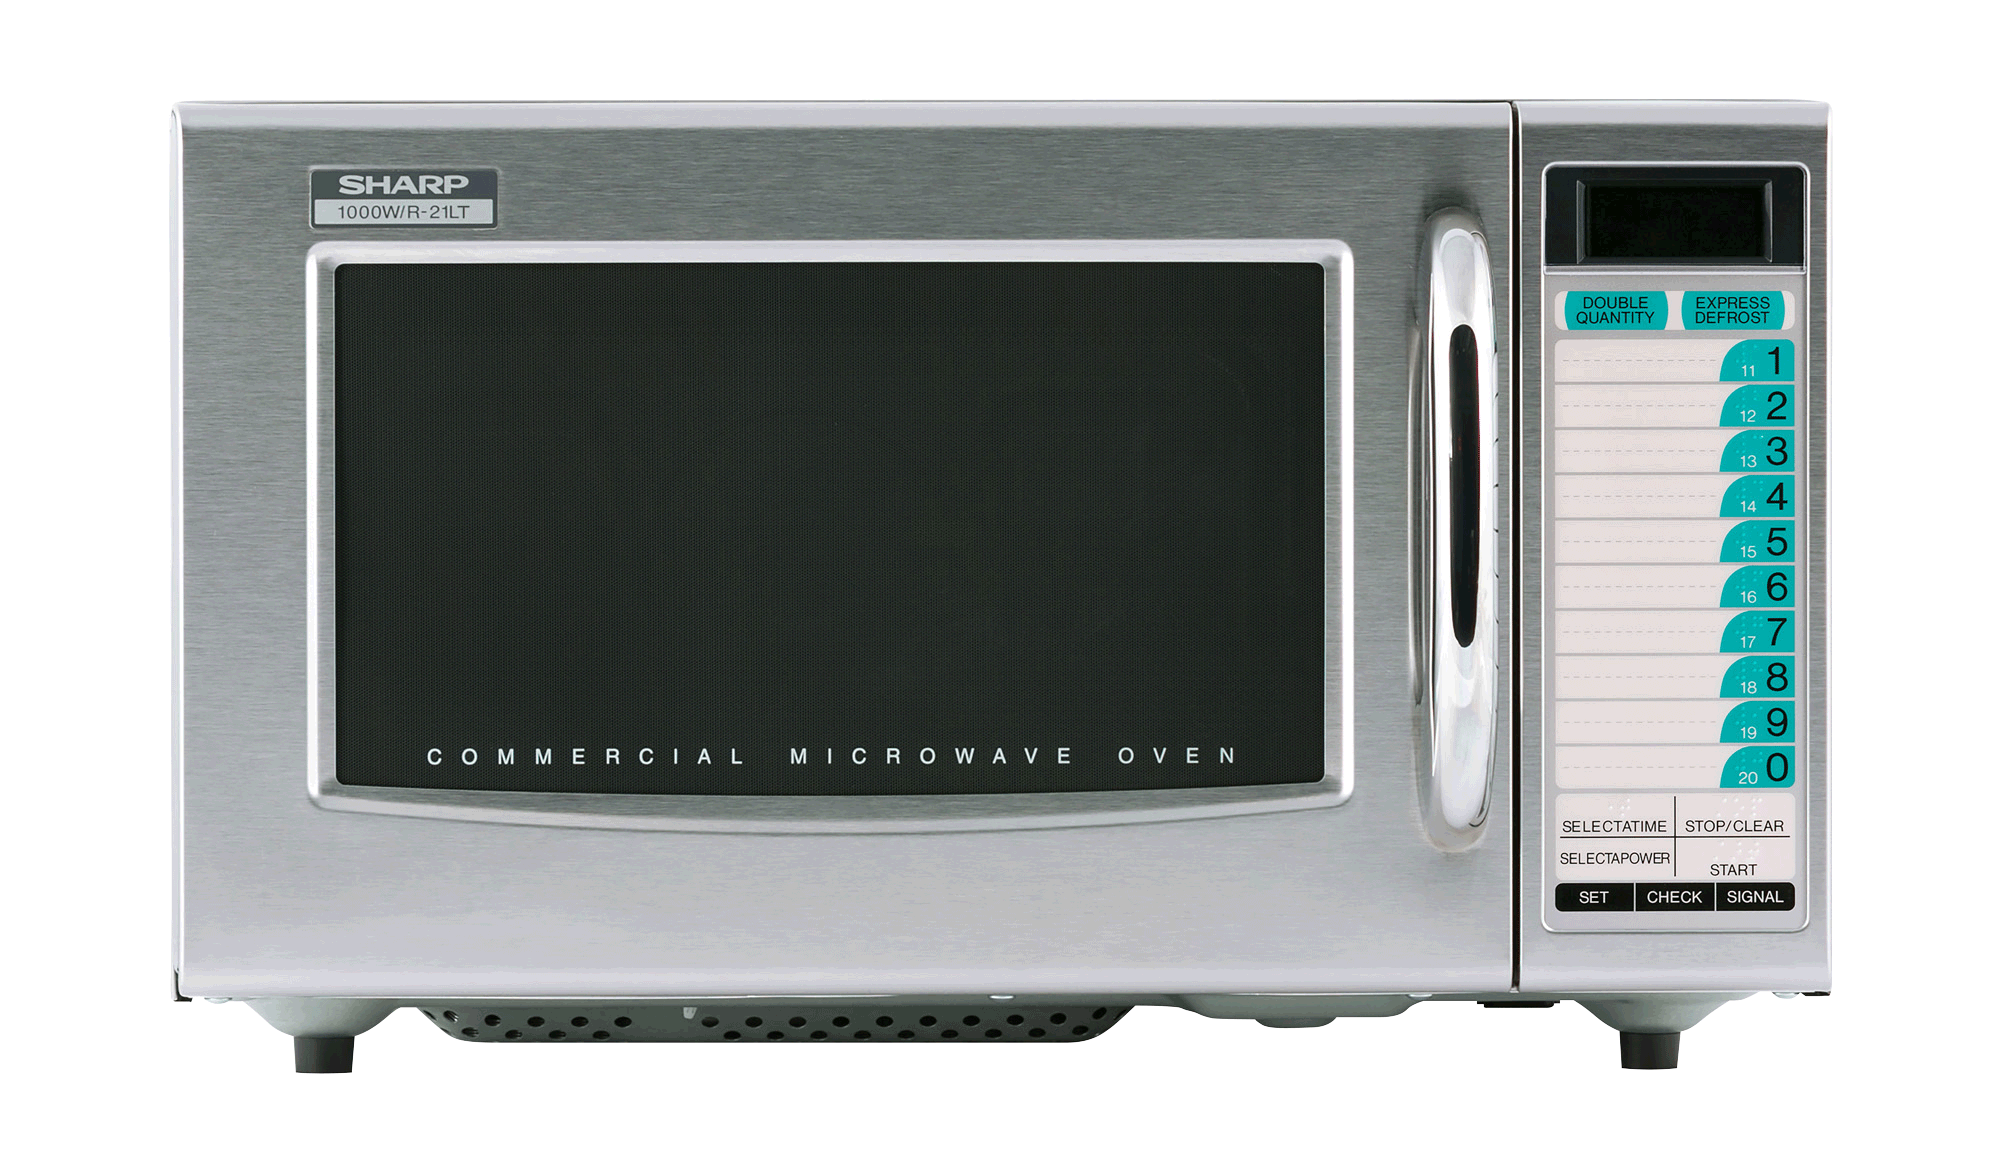 mediumduty commercial microwave with watts